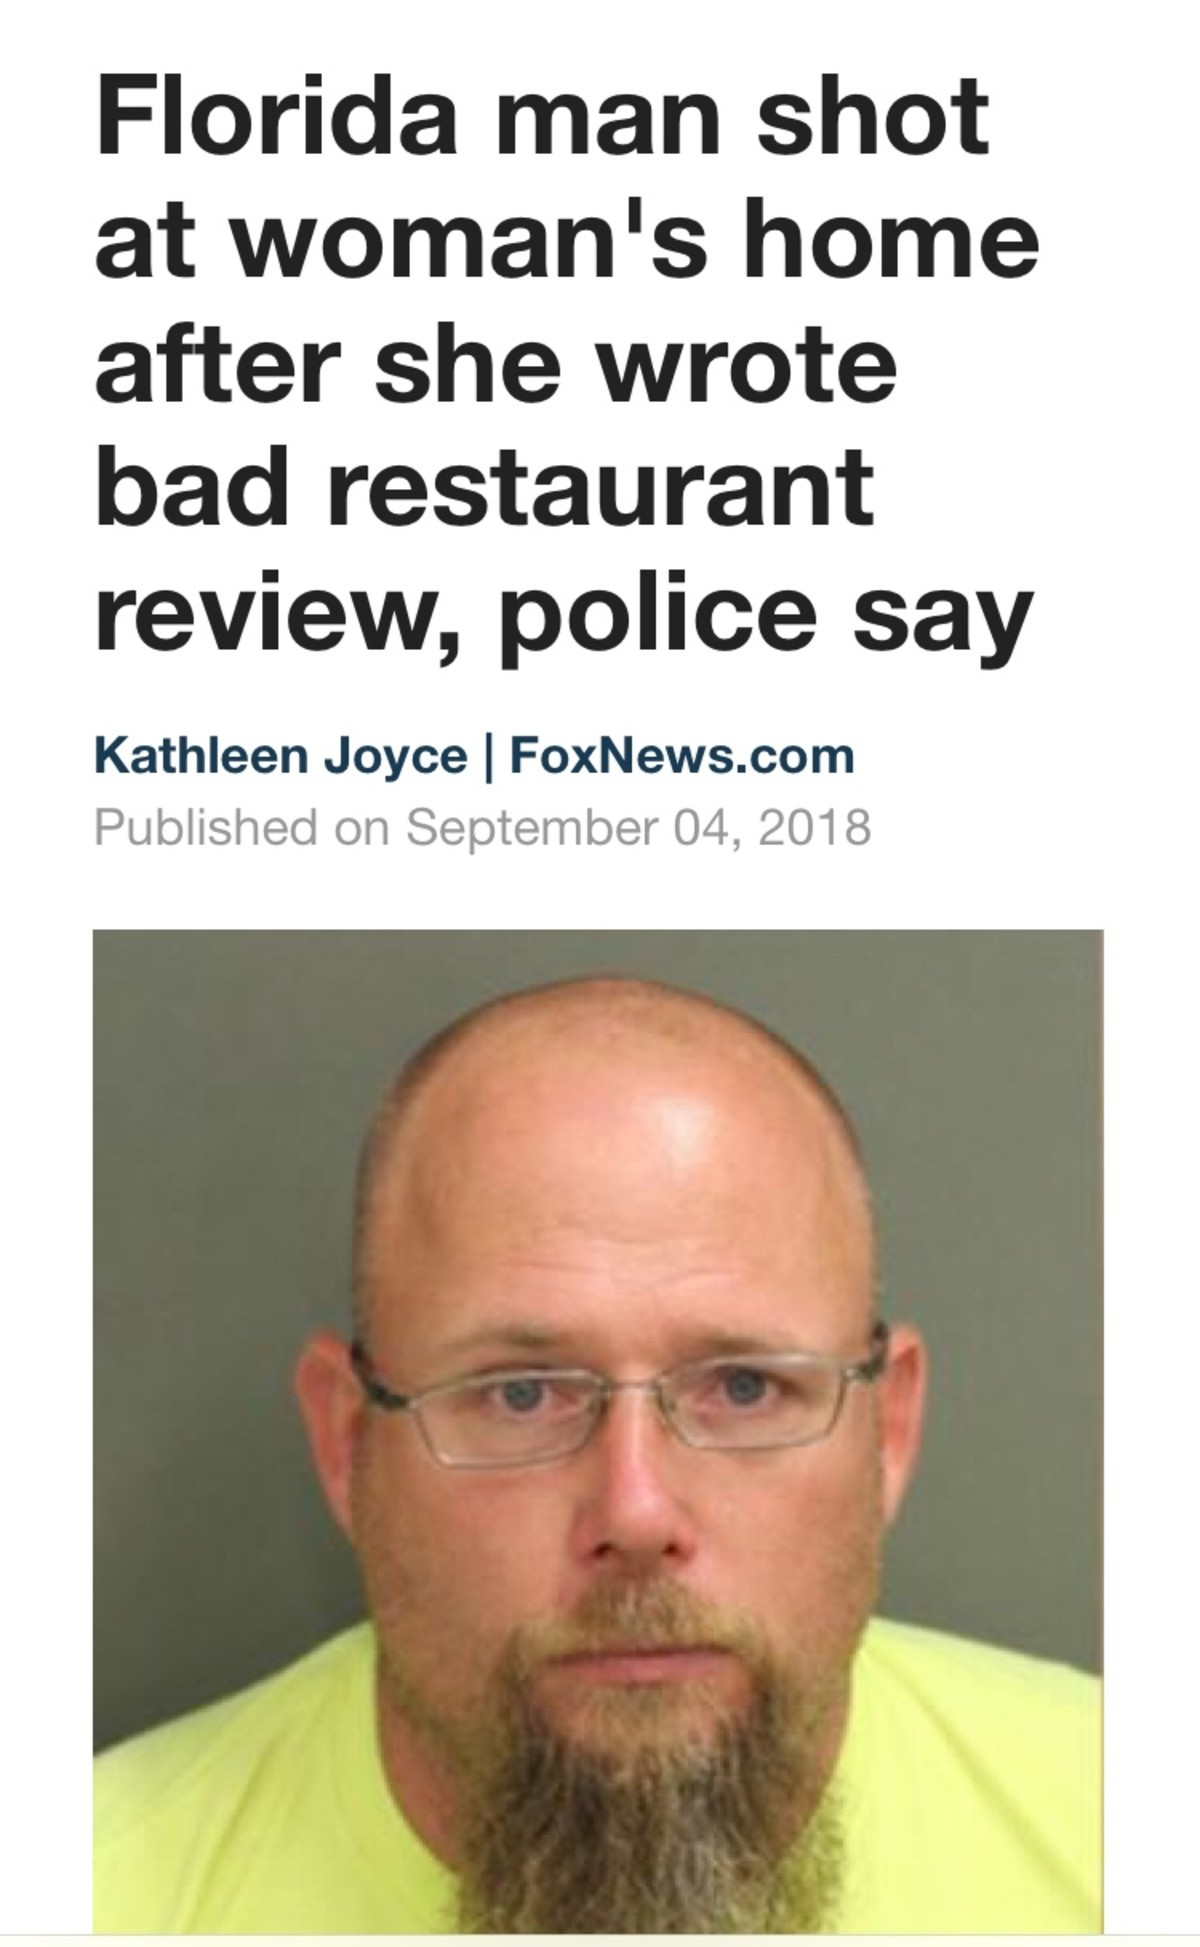 Florida Man Shoots at person who left bad yelp review. .